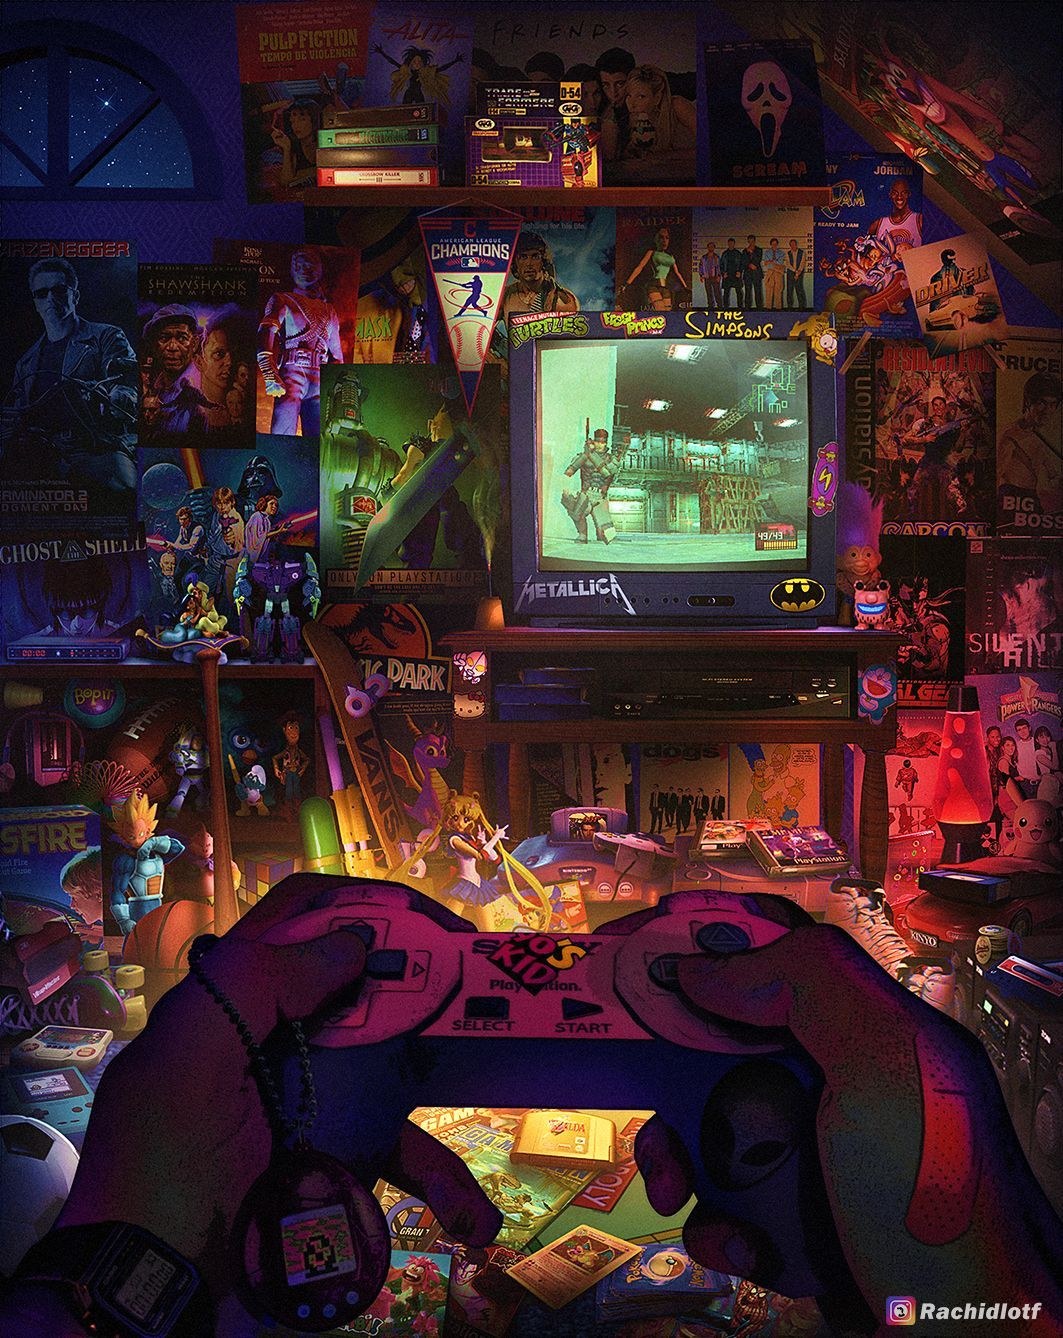 Aesthetic Gaming Wallpapers Top Free Aesthetic Gaming Backgrounds Wallpaperaccess A collection of the top 58 aesthetic gaming wallpapers and backgrounds available for download for free. aesthetic gaming wallpapers top free